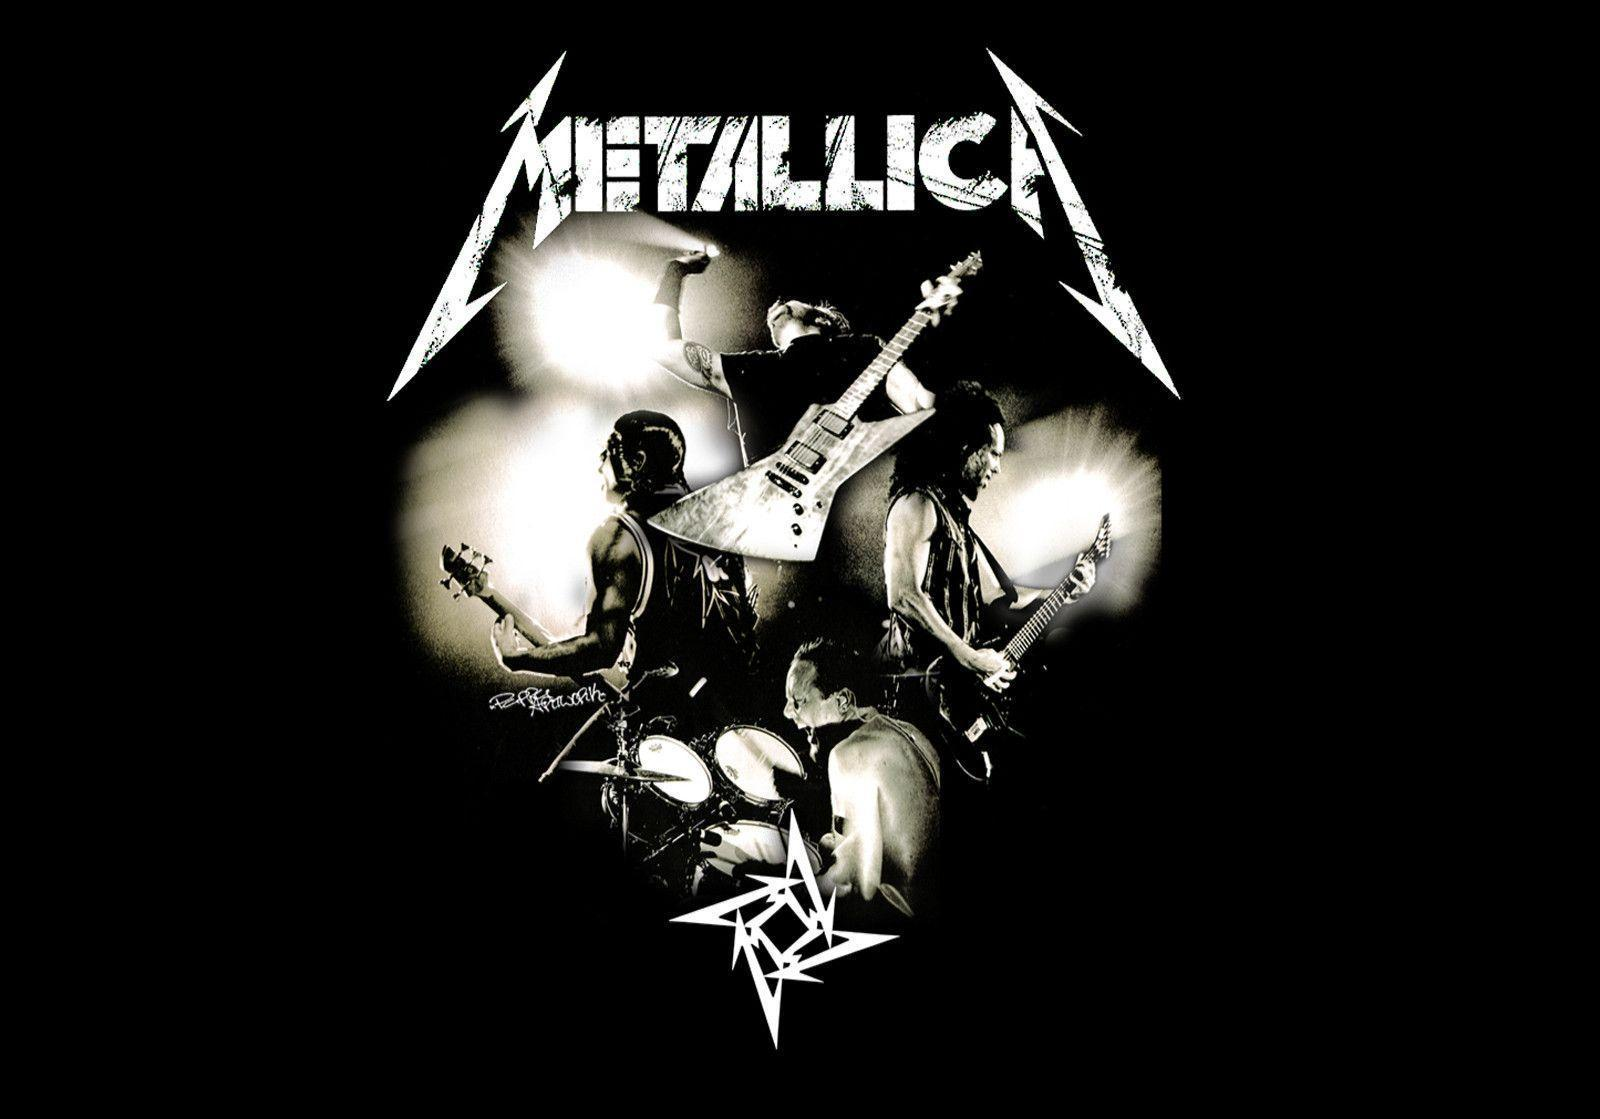 Image For > Metallica Star Logo Wallpapers